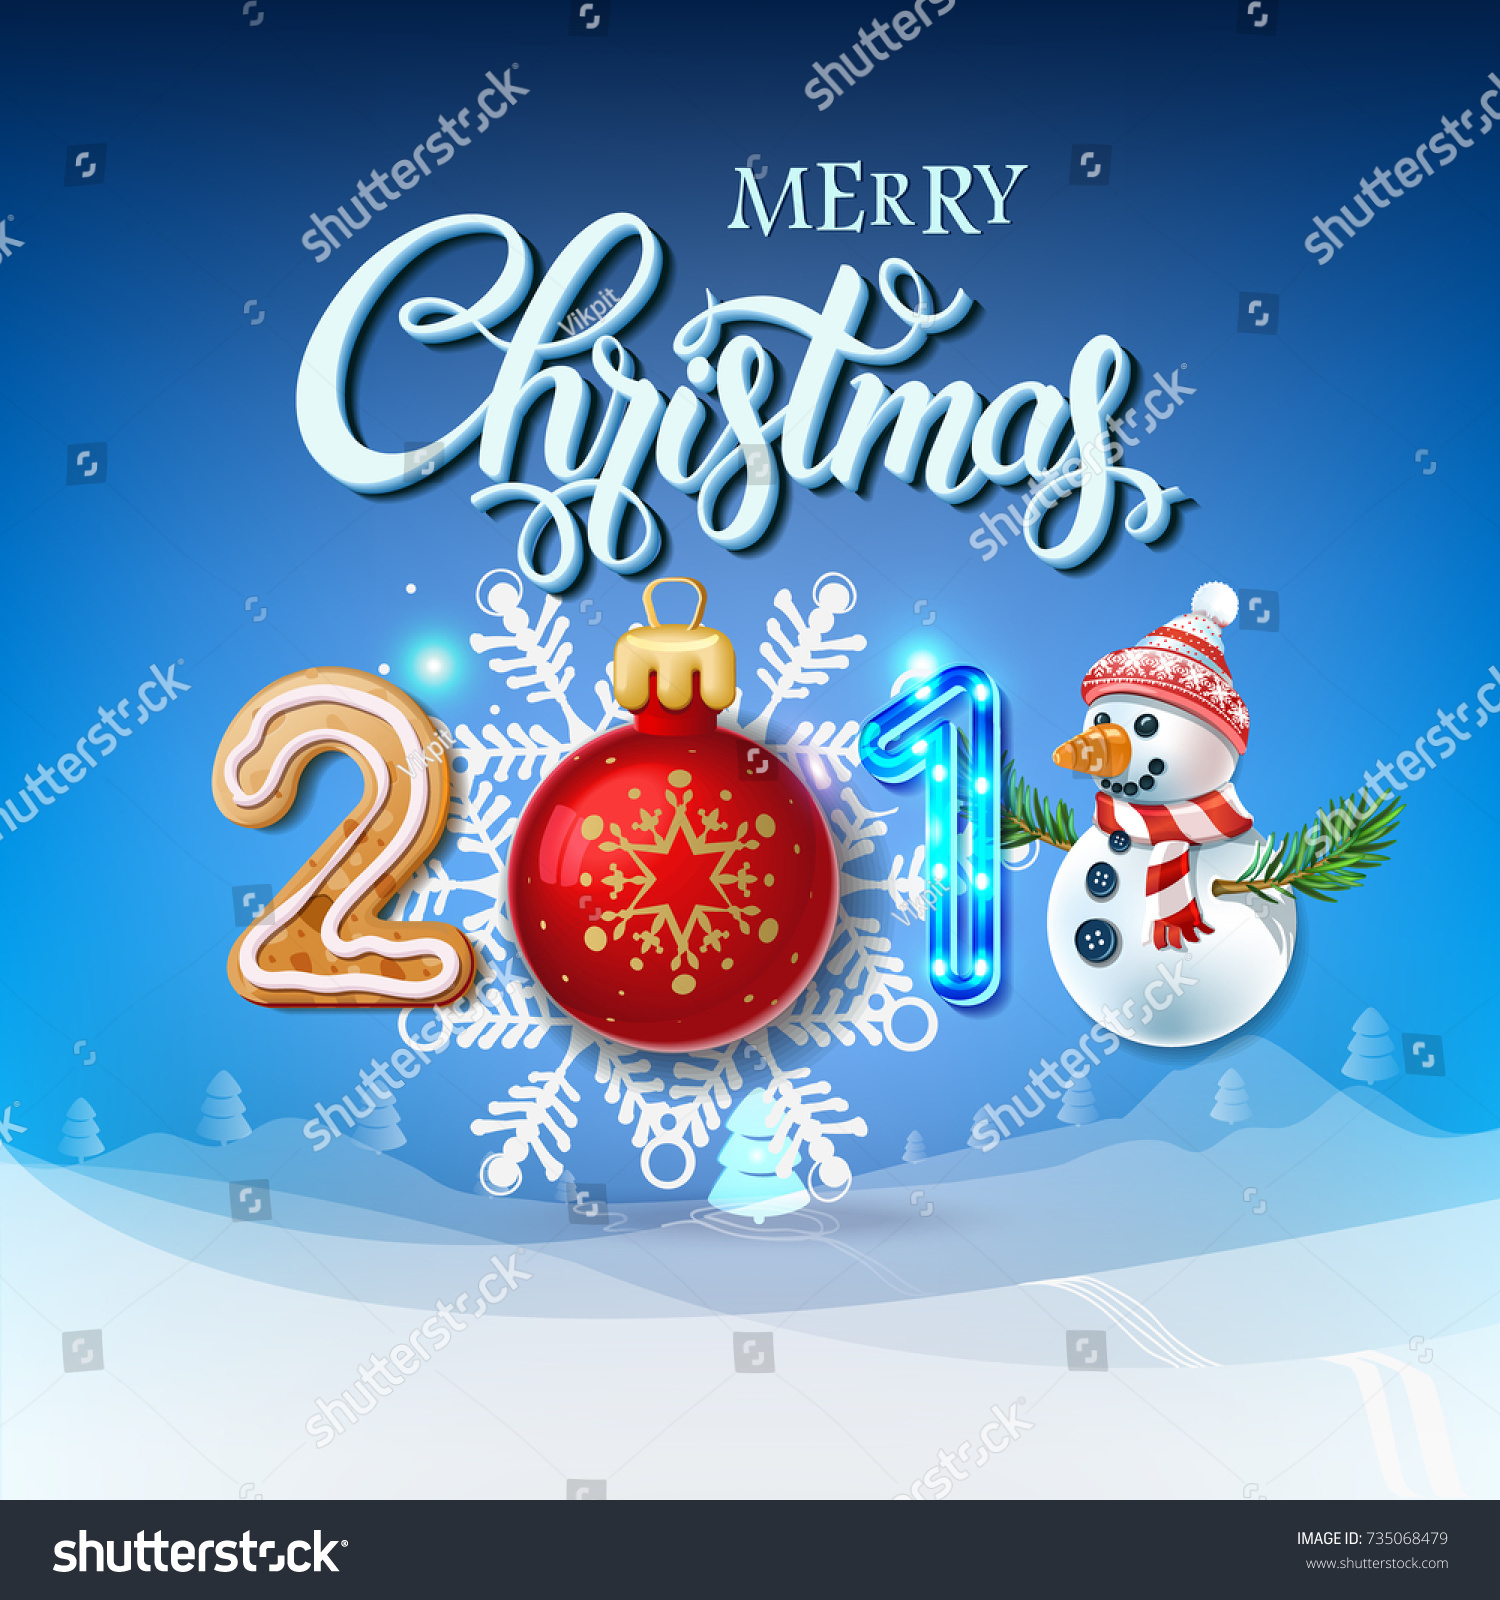 Merry Christmas 2018 Decoration Poster Card Stock Vector Royalty